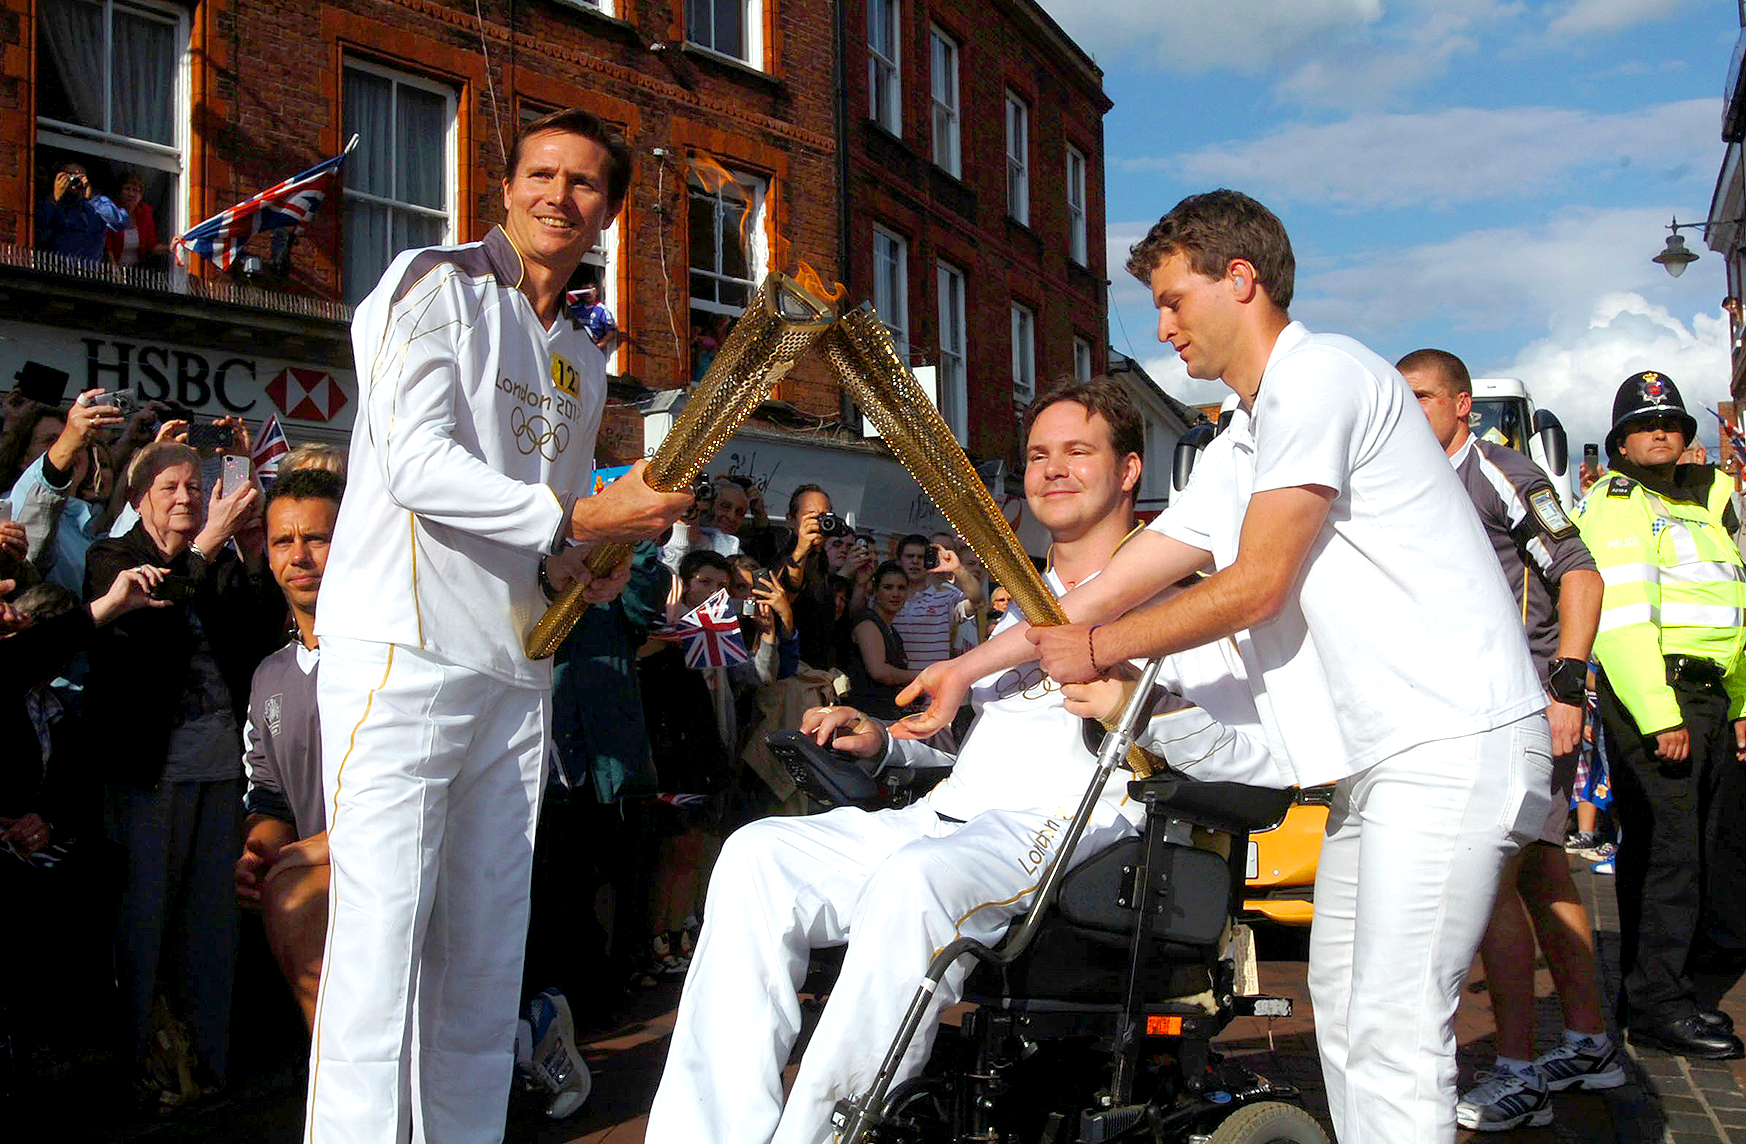 Dan Eley carrying the Olympic Torch